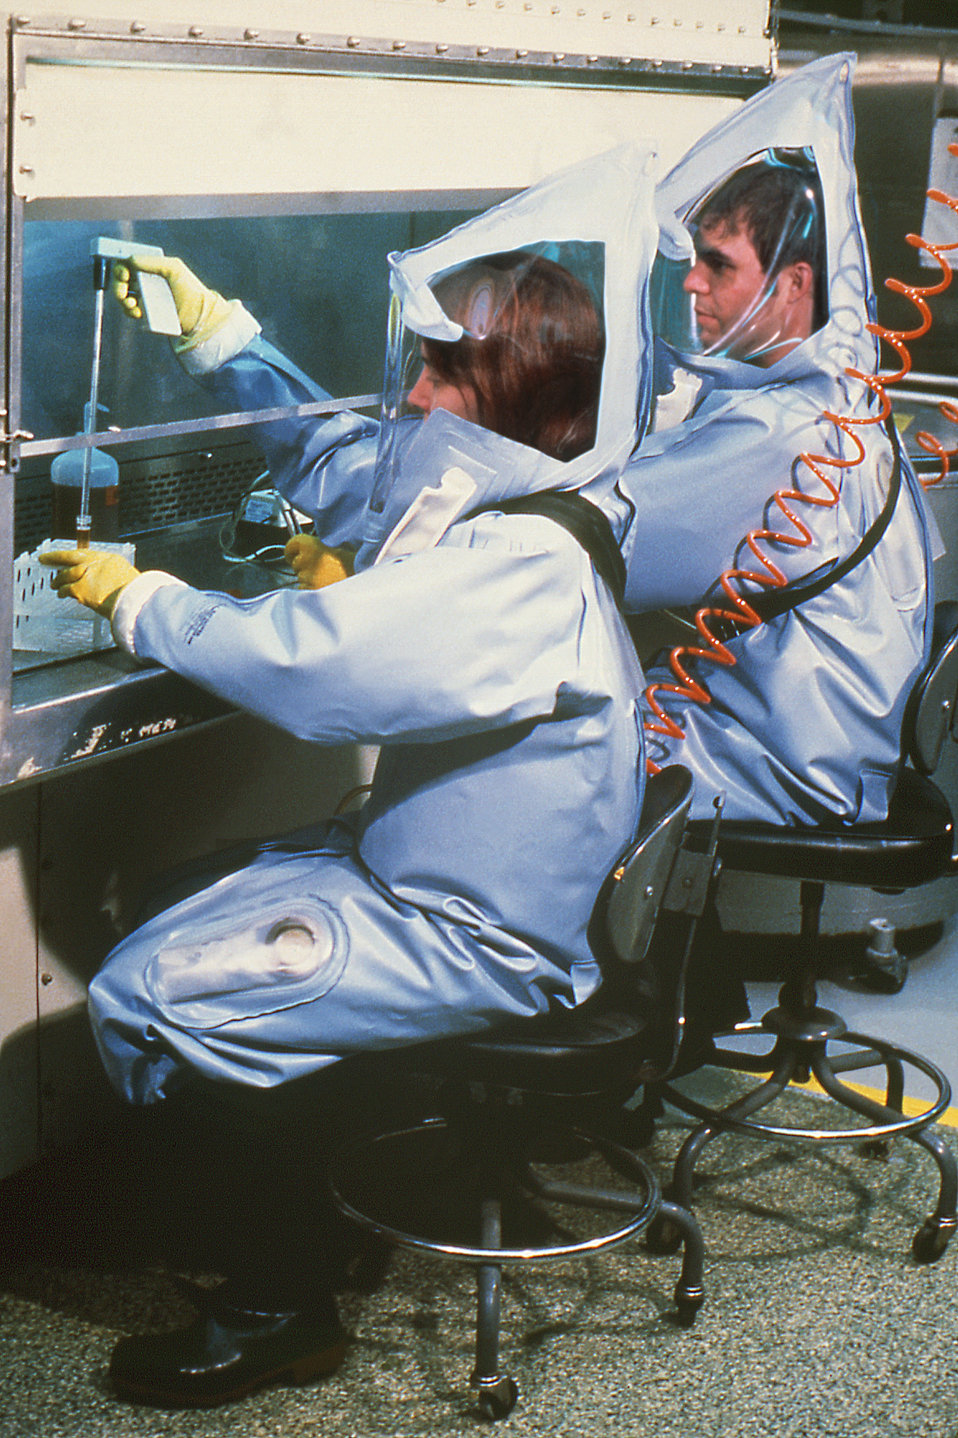 This image depicts two Centers for Disease Control laboratorians, Luanne Elliot and Dave Auperin, as they were working under a flow hood ins